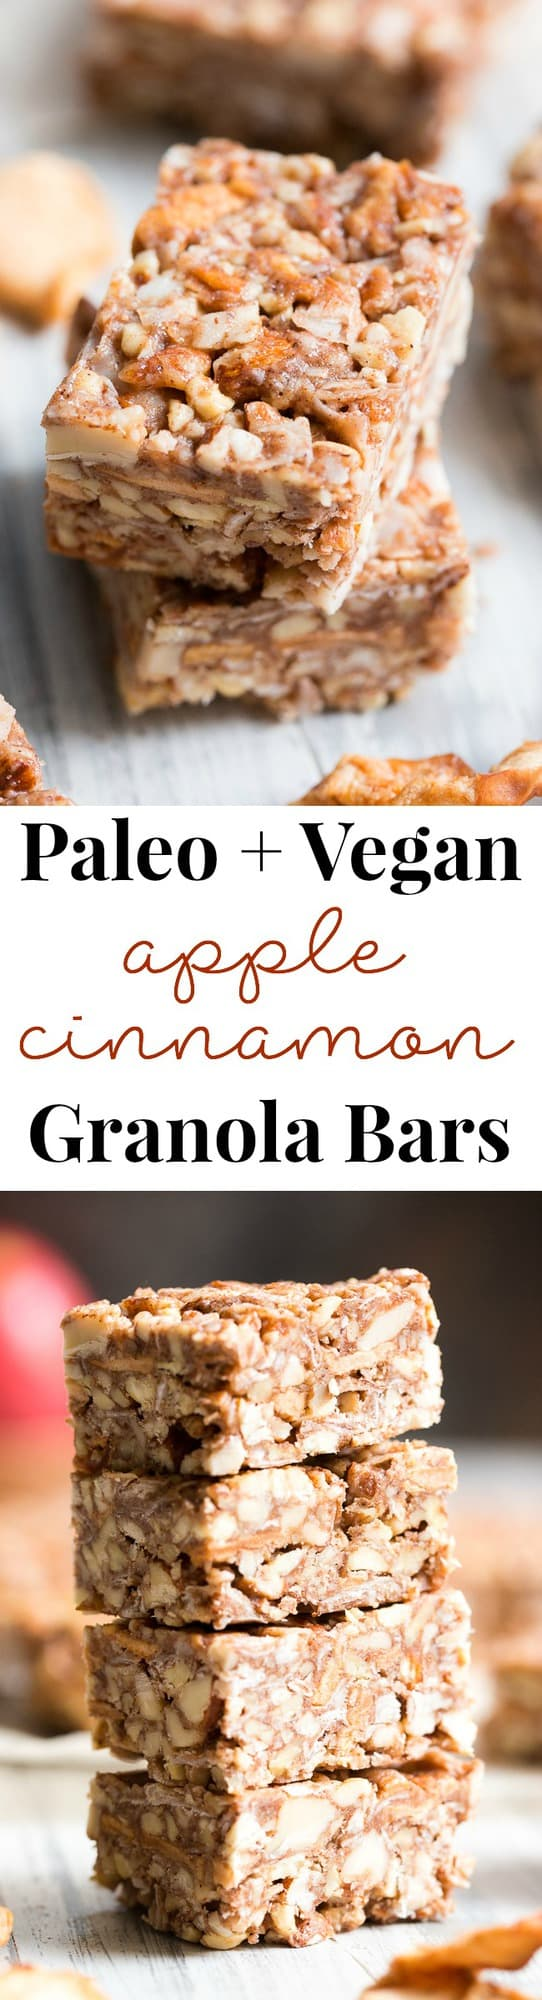 These grain free, vegan, and paleo granola bars are packed with warm spices and chopped dried apples for a fun fall touch! They're sweetened with pure maple syrup and contain no refined sugar, grains or dairy. They're chewy, crunchy, family approved and perfect for after school snacks!